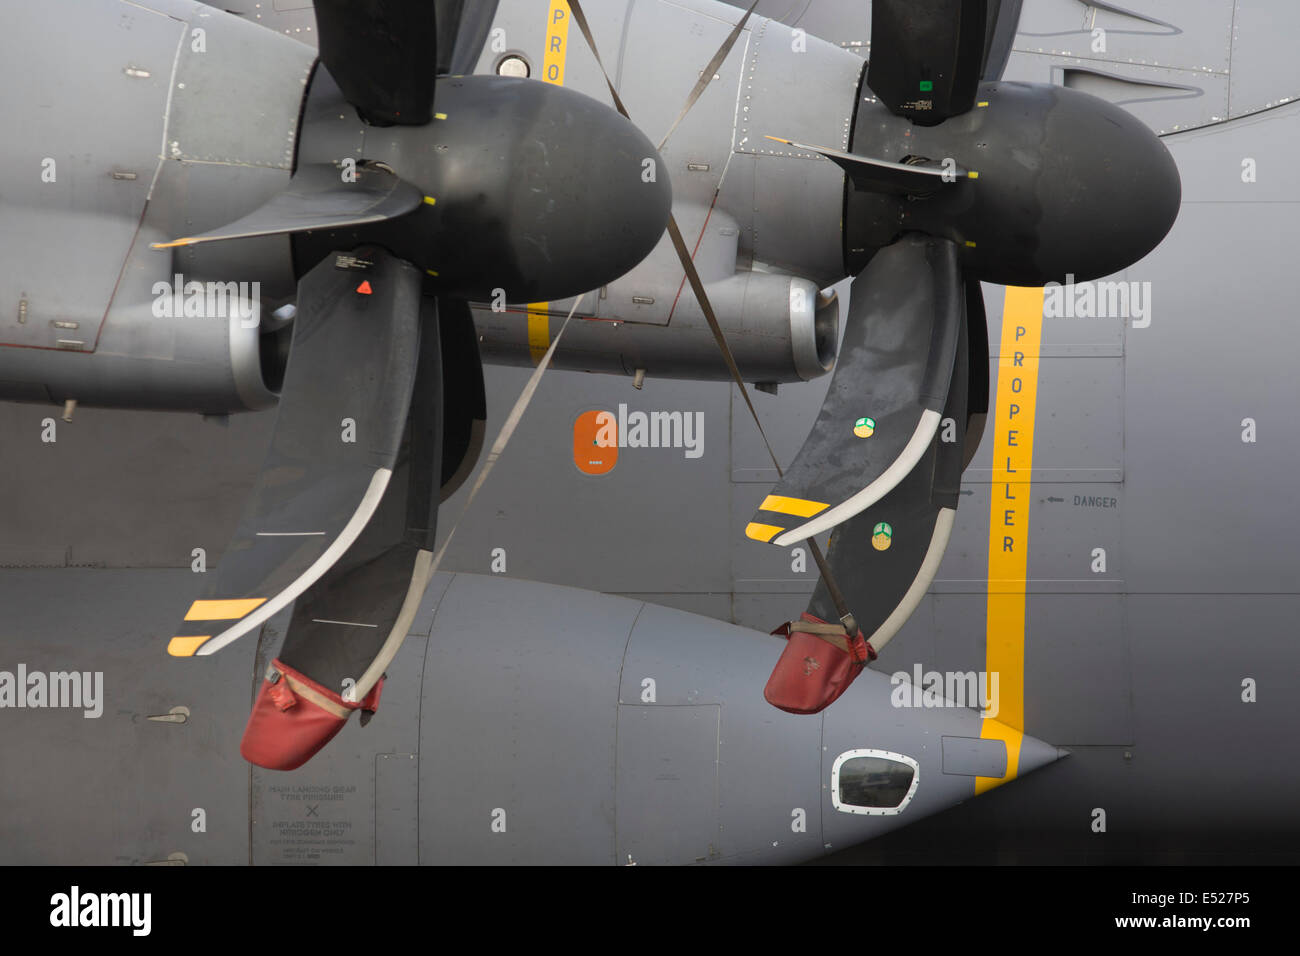 Propellers detail of an Airbus A400M military transporter plane exhibited at the Farnborough Air Show, England. - Stock Image